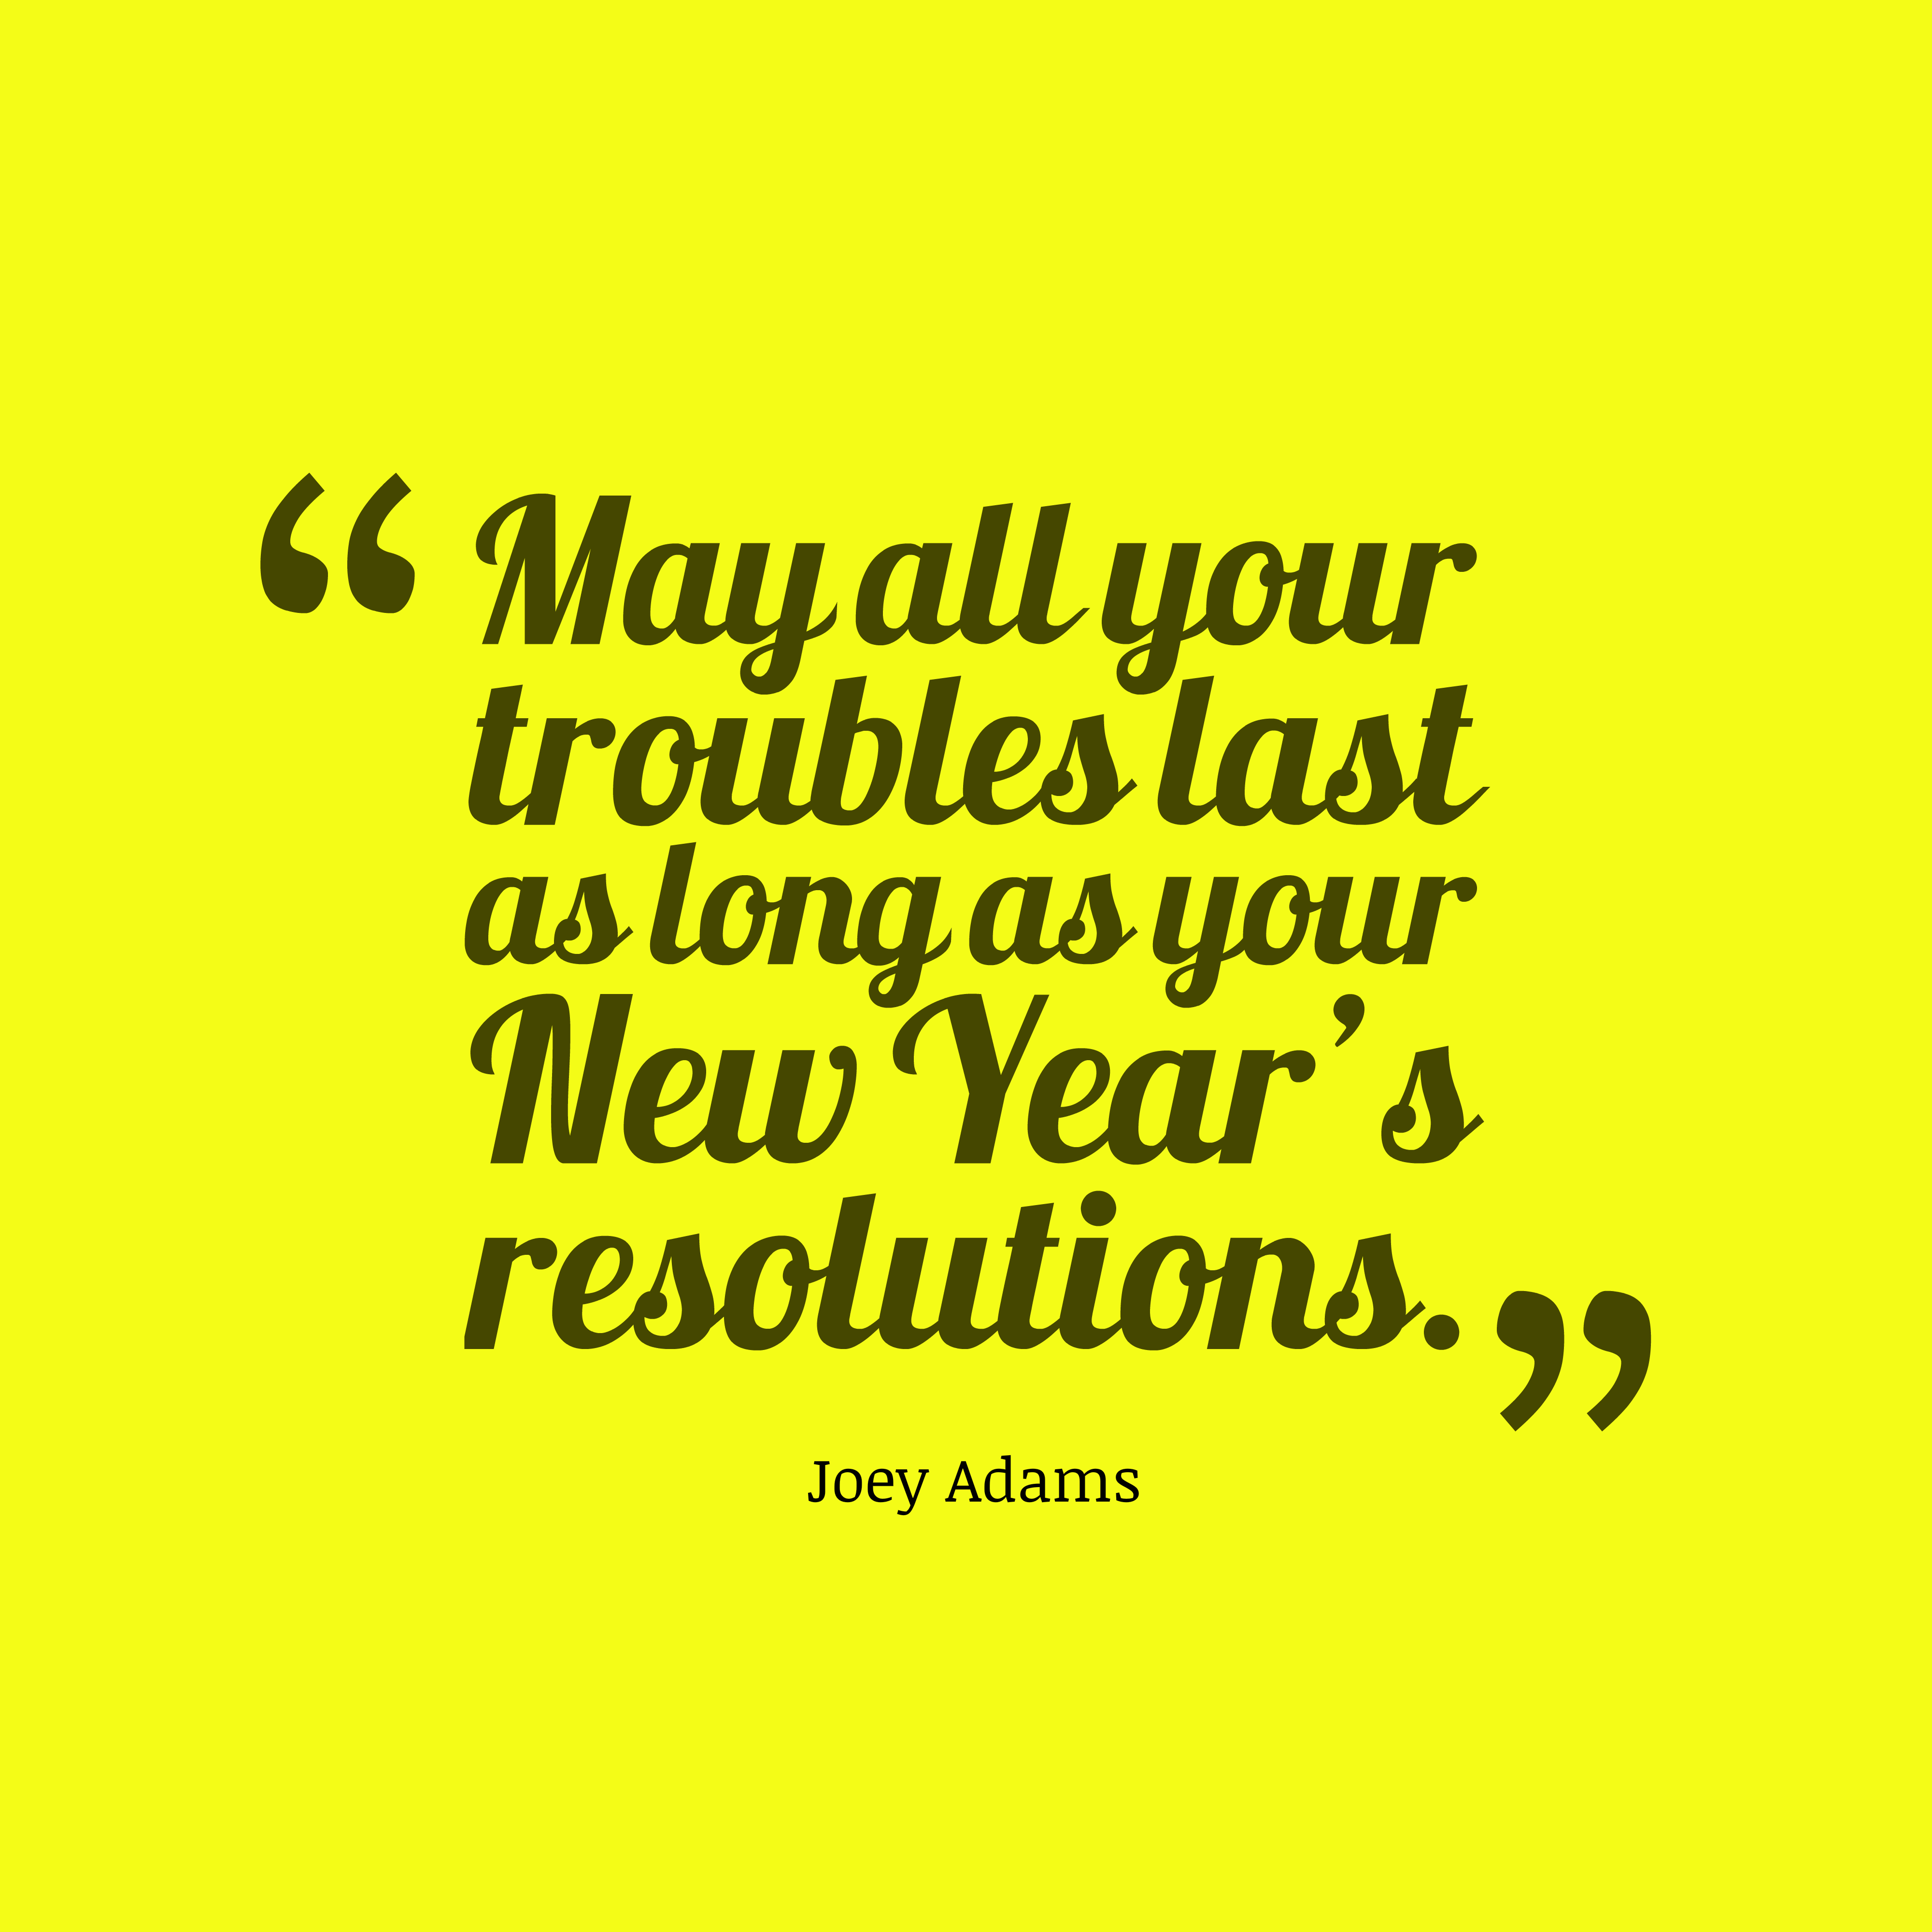 Quotes image of May all your troubles last as long as your New Year's resolutions.